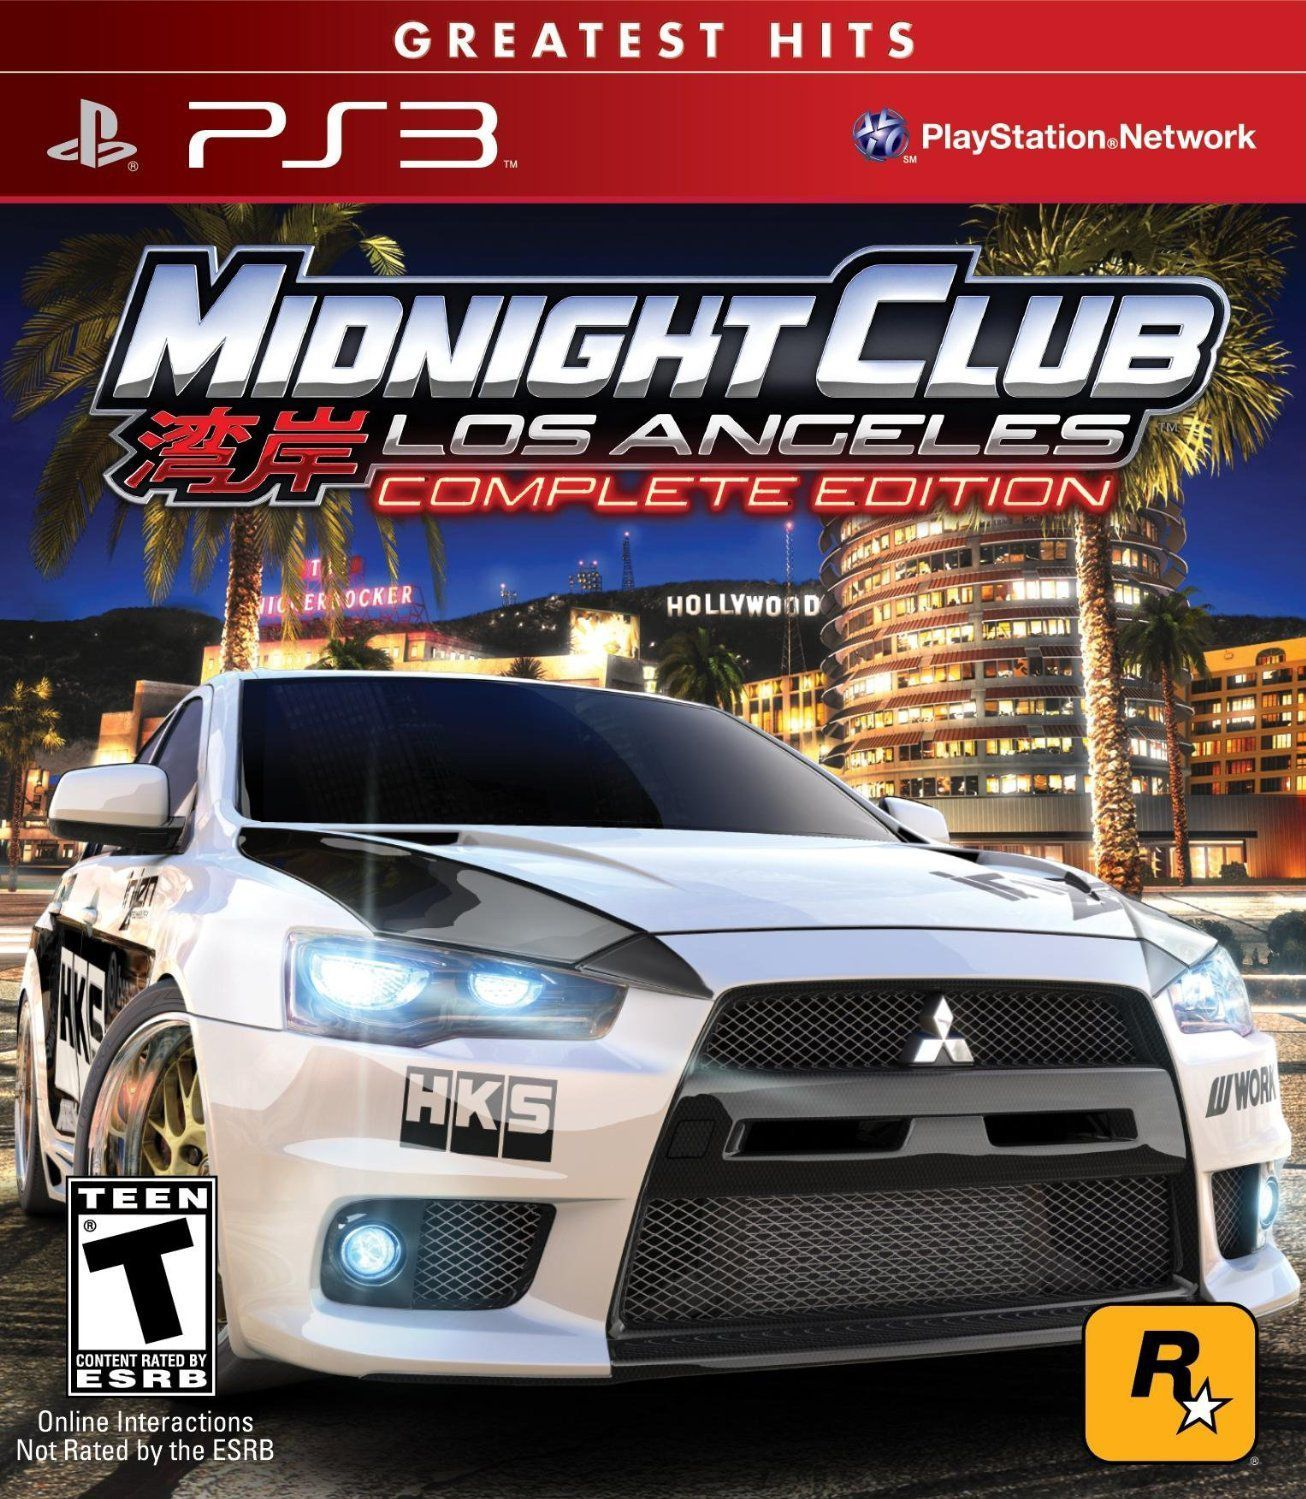 Midnight Club: Los Angeles Downloadable Content